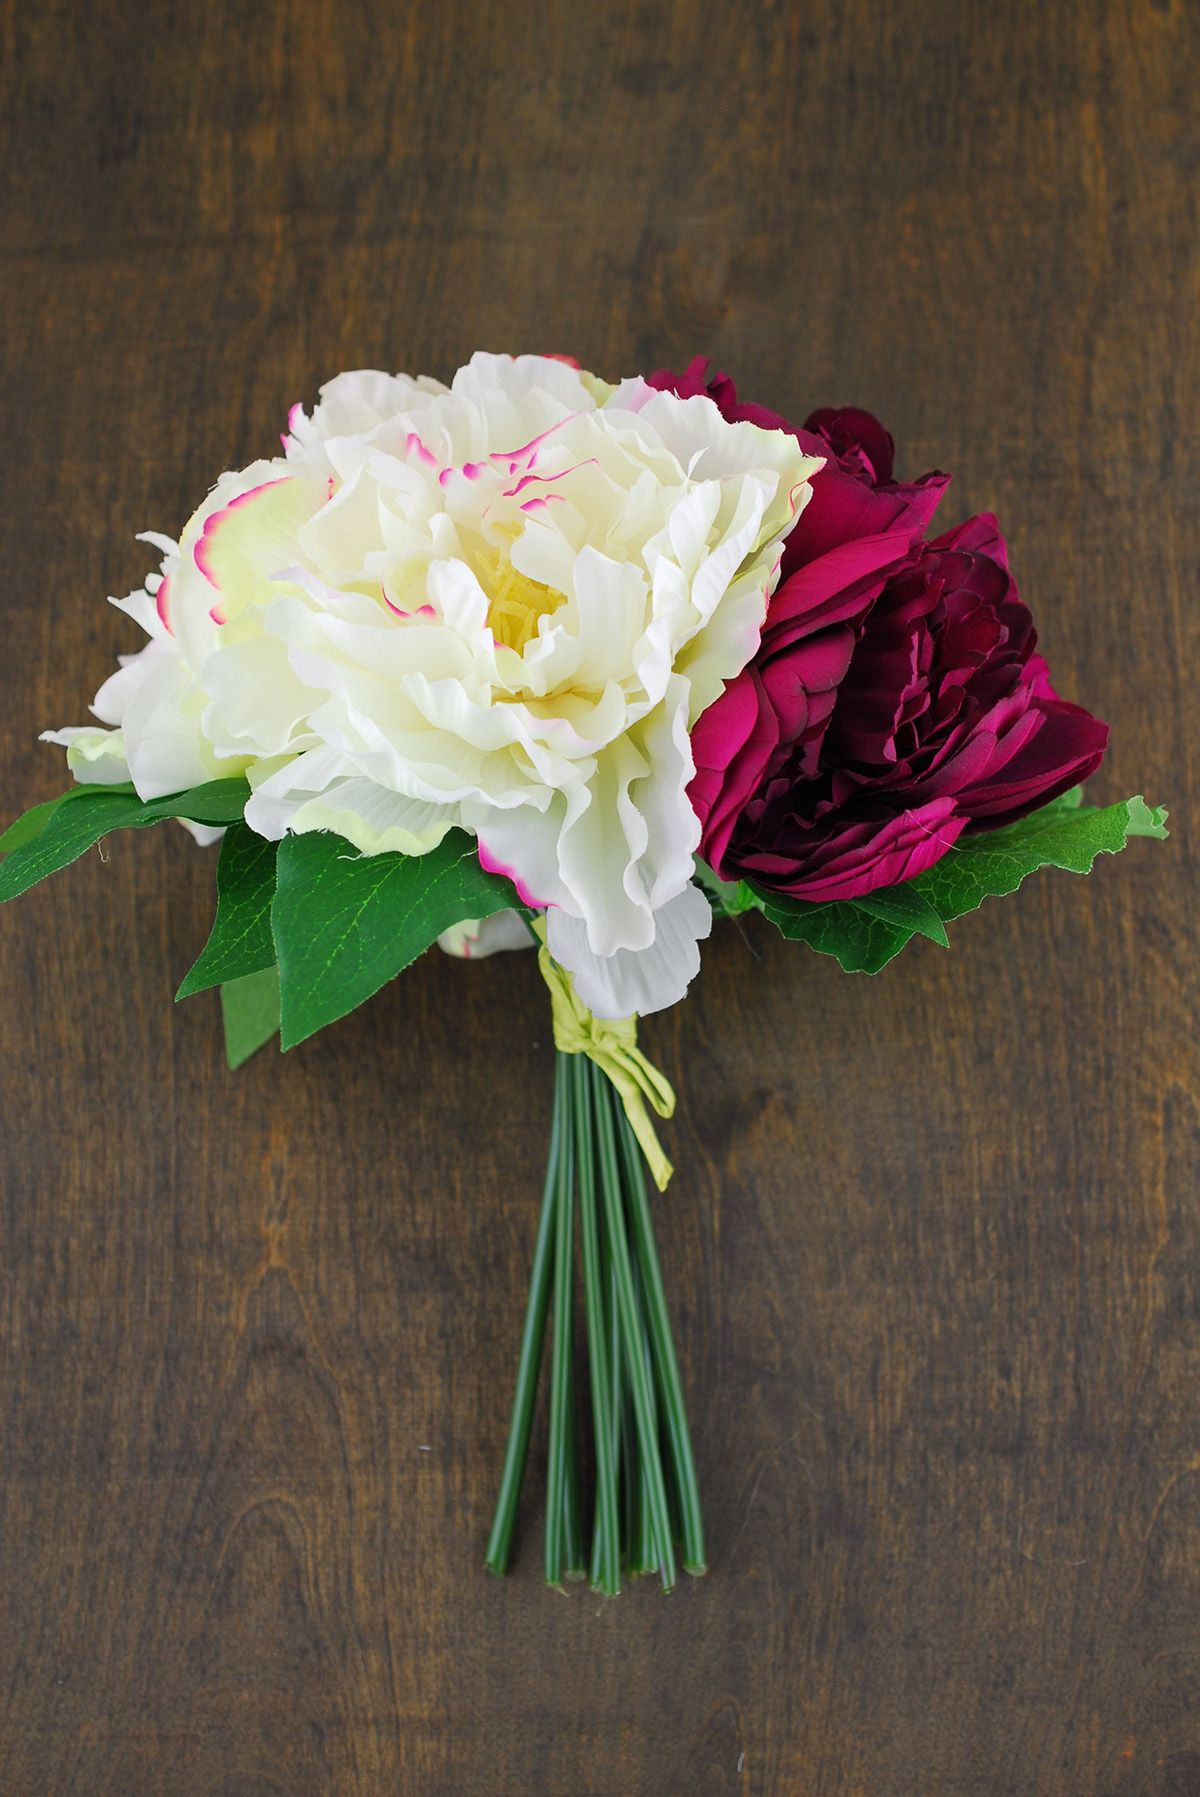 Pink and maroon wedding decor  Peony Bouquet in Burgundy u Cream in  Seal the Deal  Pinterest